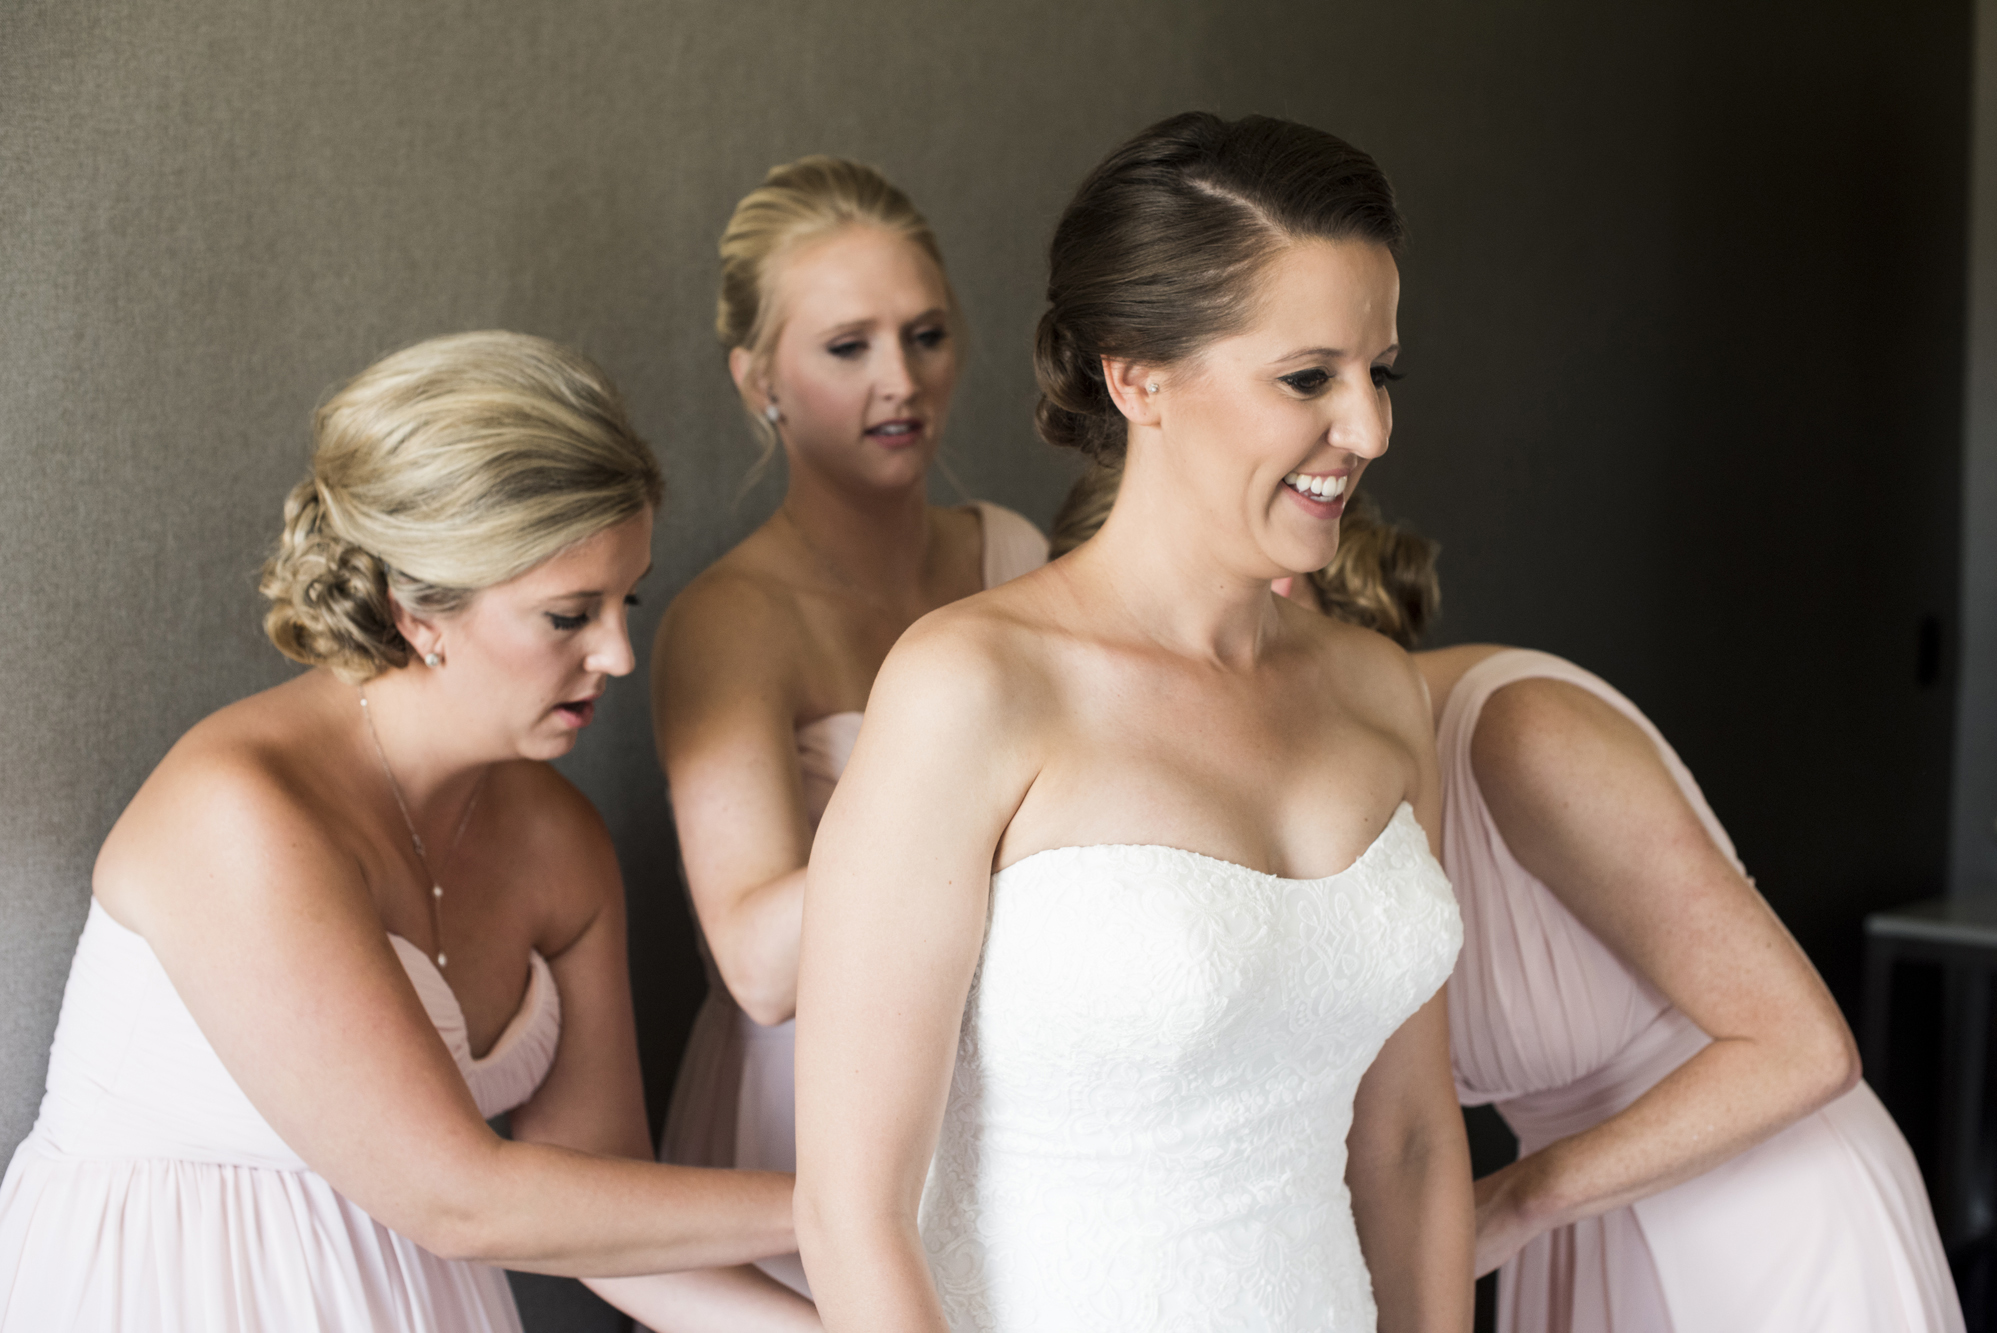 Wedding Photos Minneapolis | Photography by Melissa Hesse | Rivets & Roses